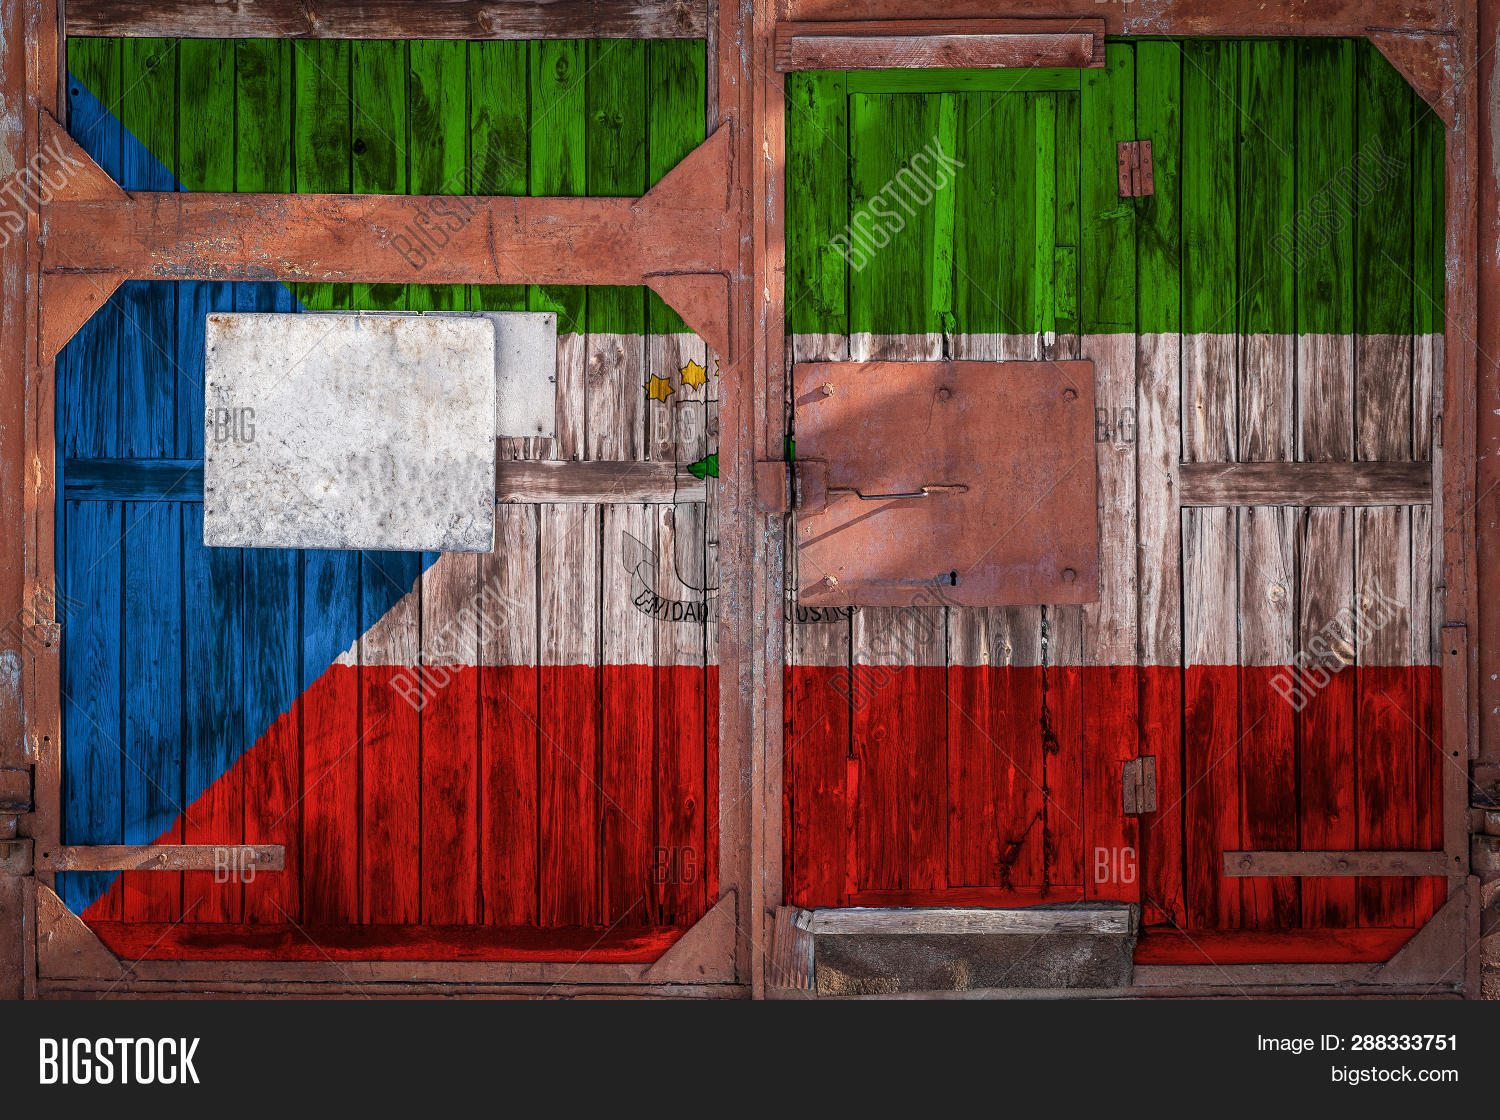 Close Old Warehouse Image Photo Free Trial Bigstock